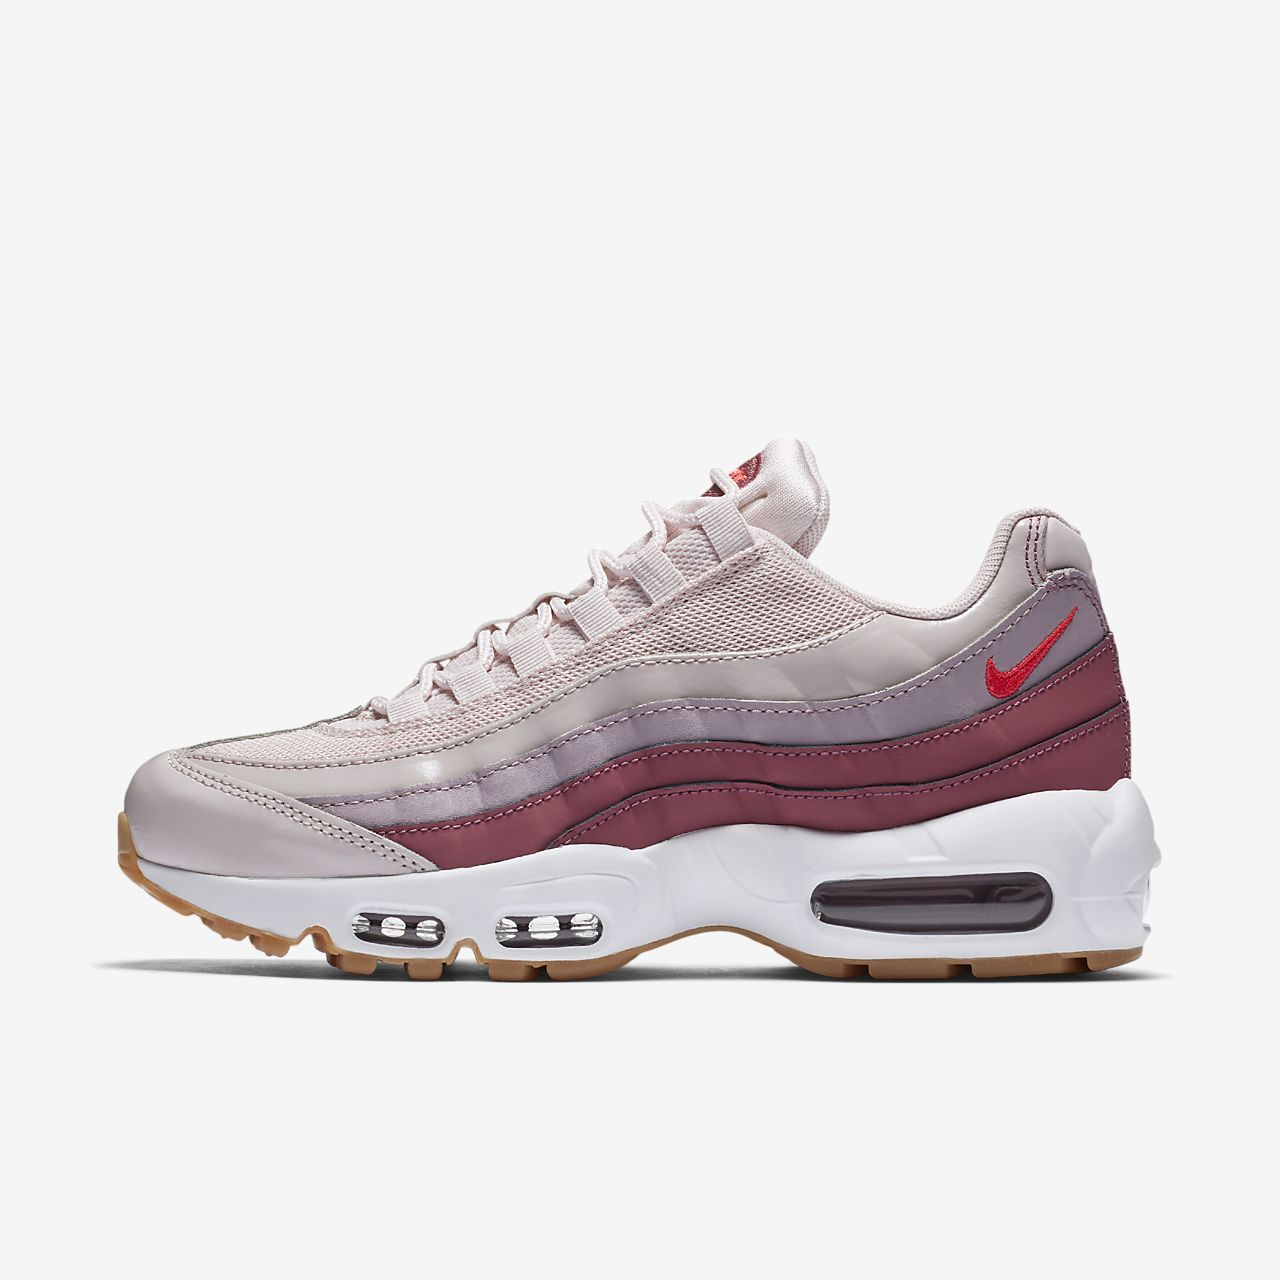 ... Nike Air Max 95 OG Women's Shoe